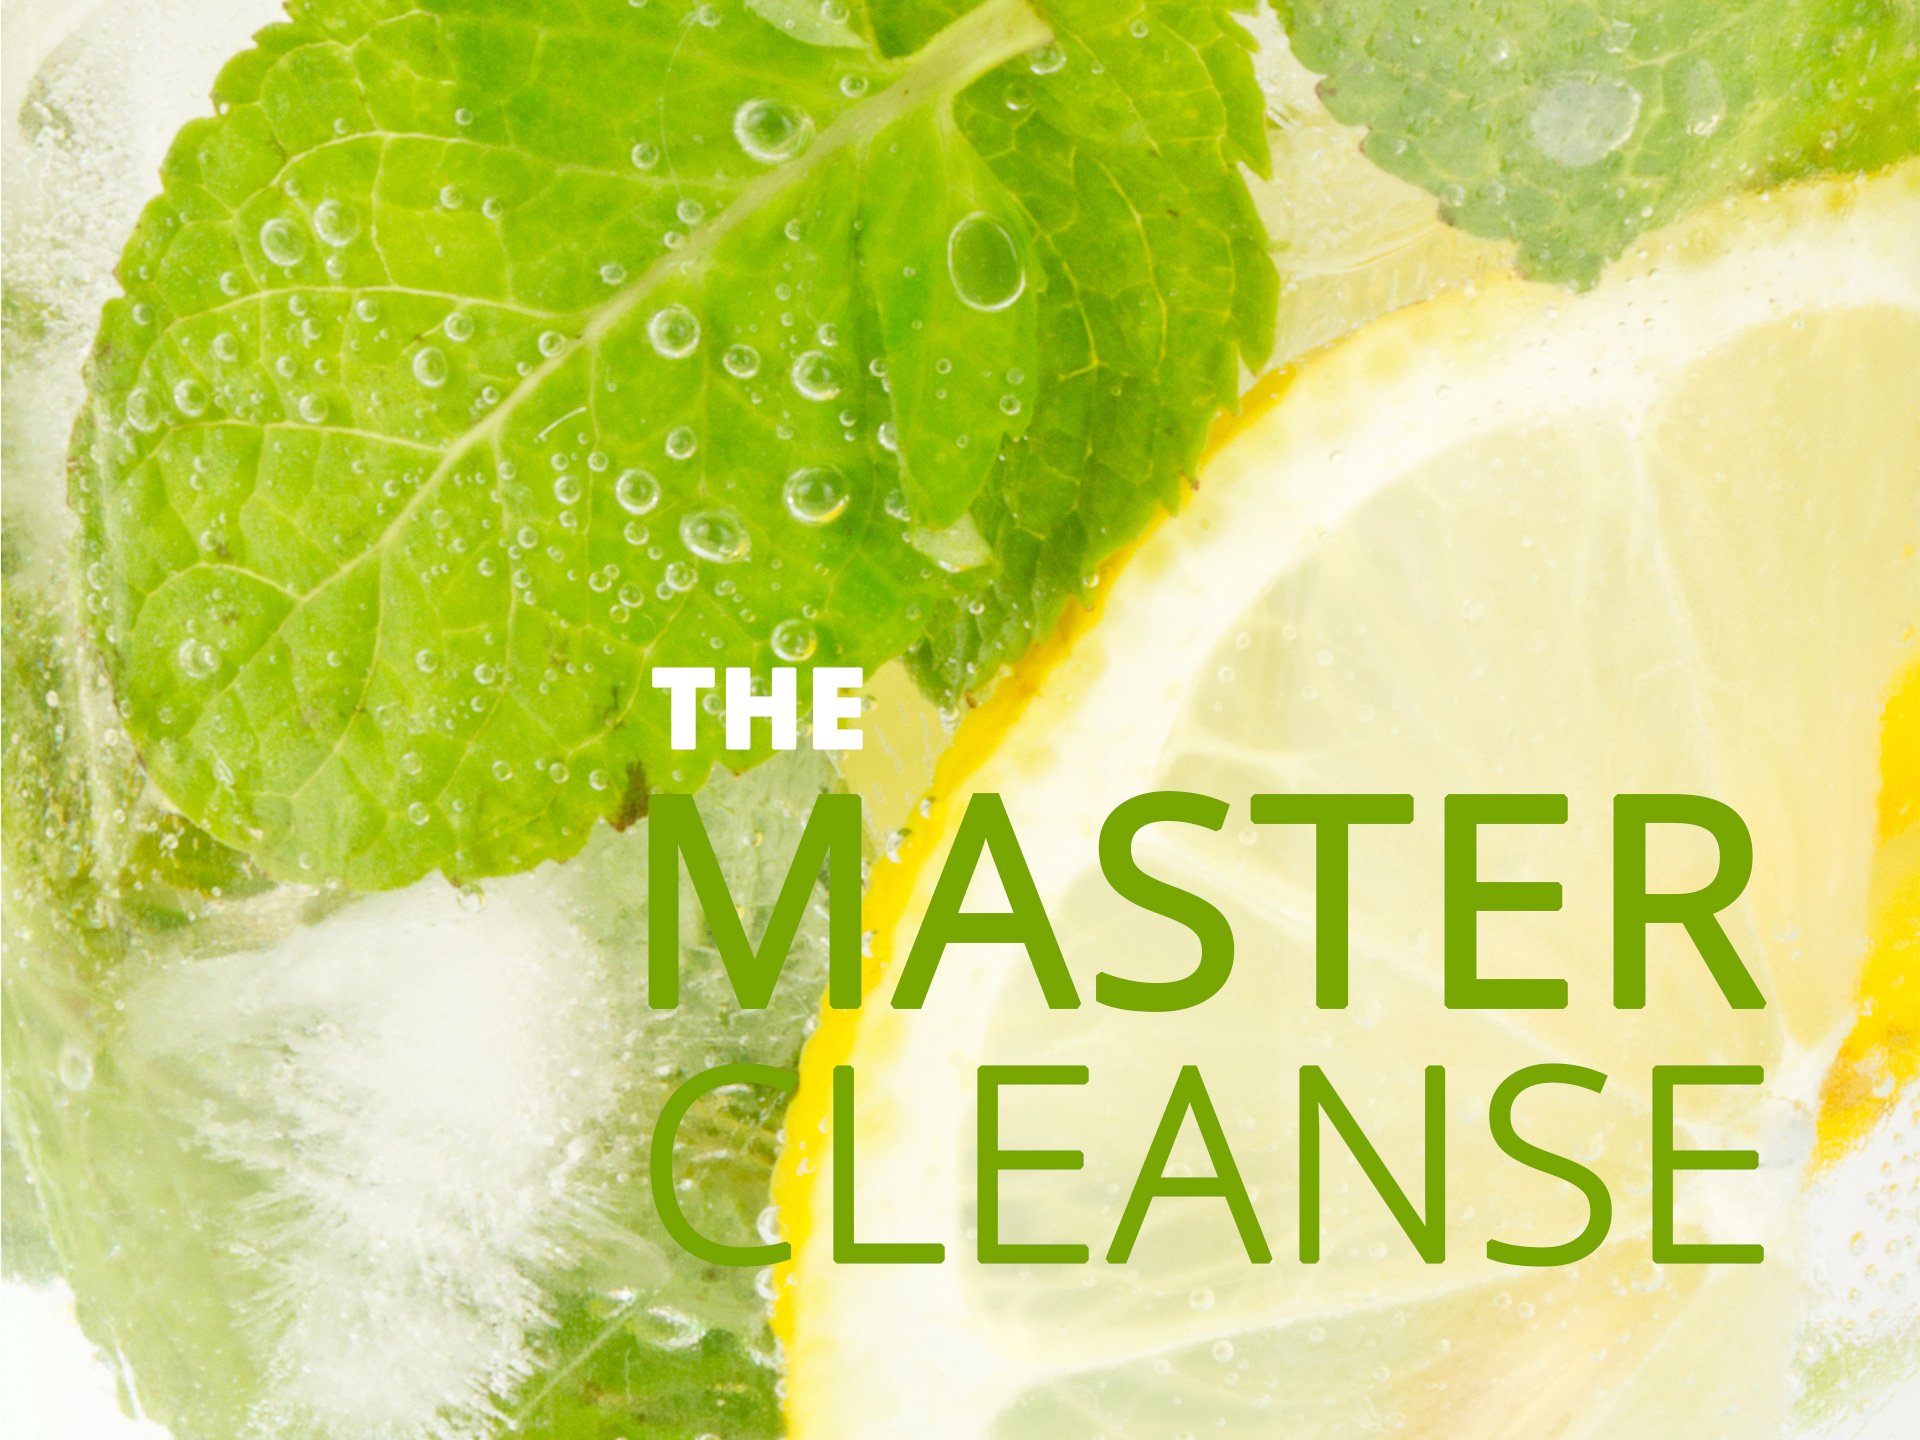 Lemon master cleanse benefits